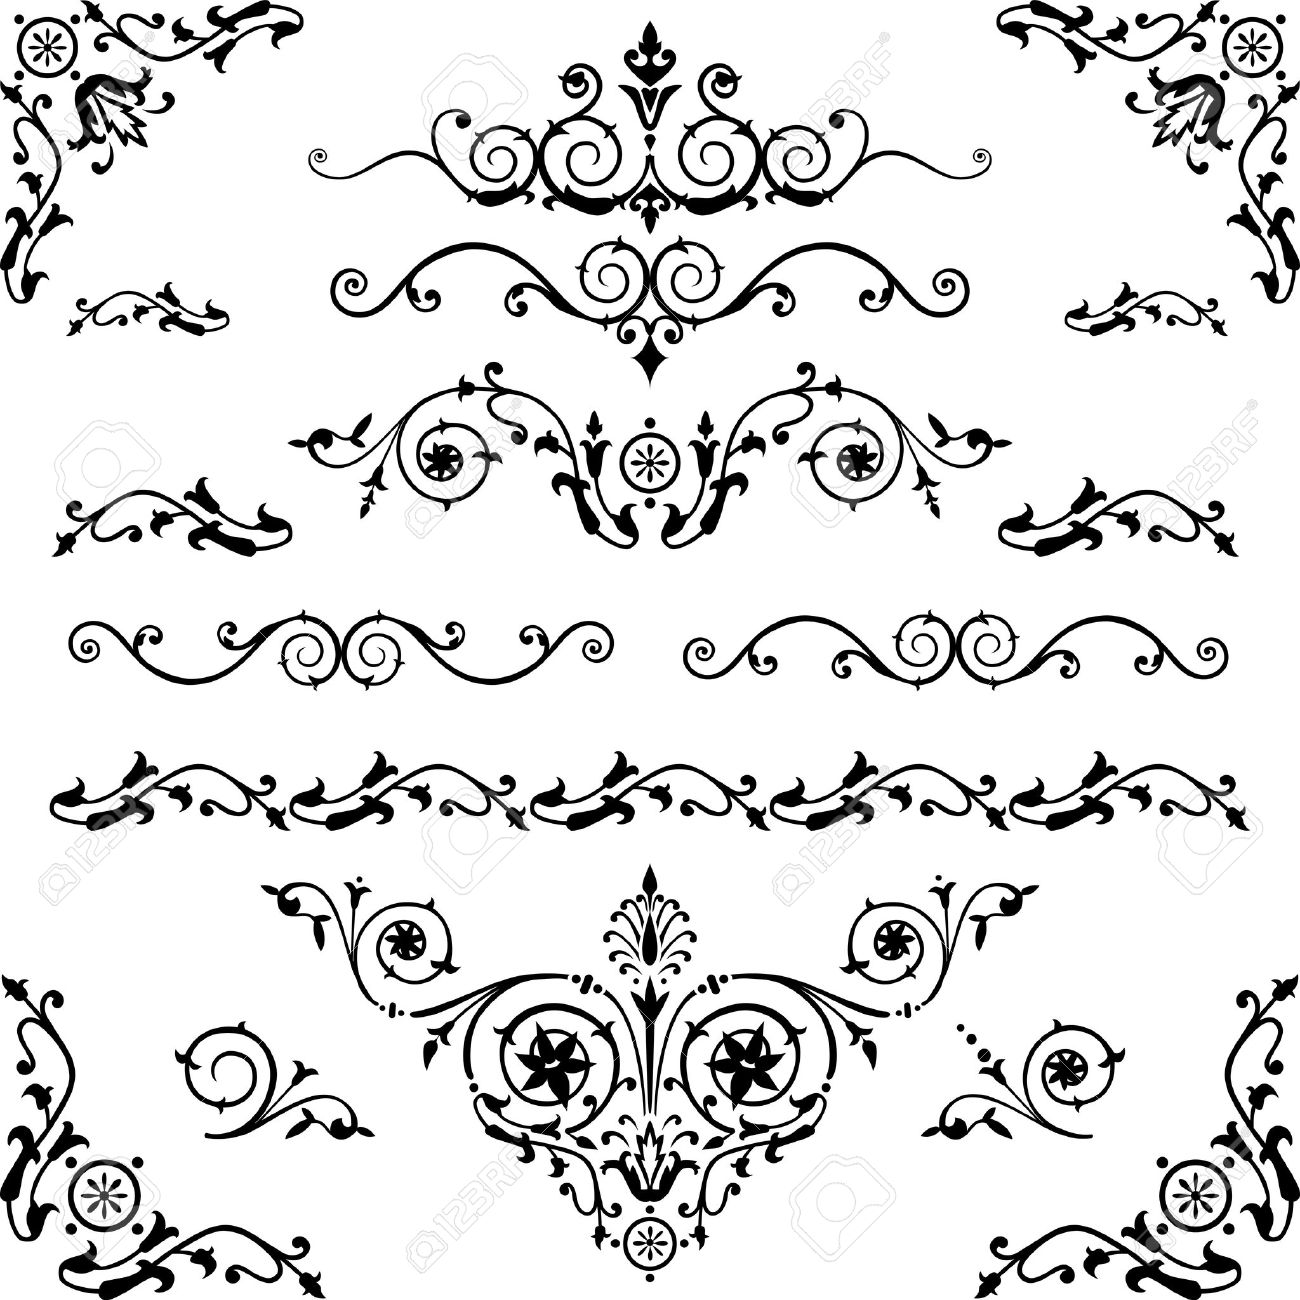 Victorian Design Elements vintage design elements royalty free cliparts, vectors, and stock